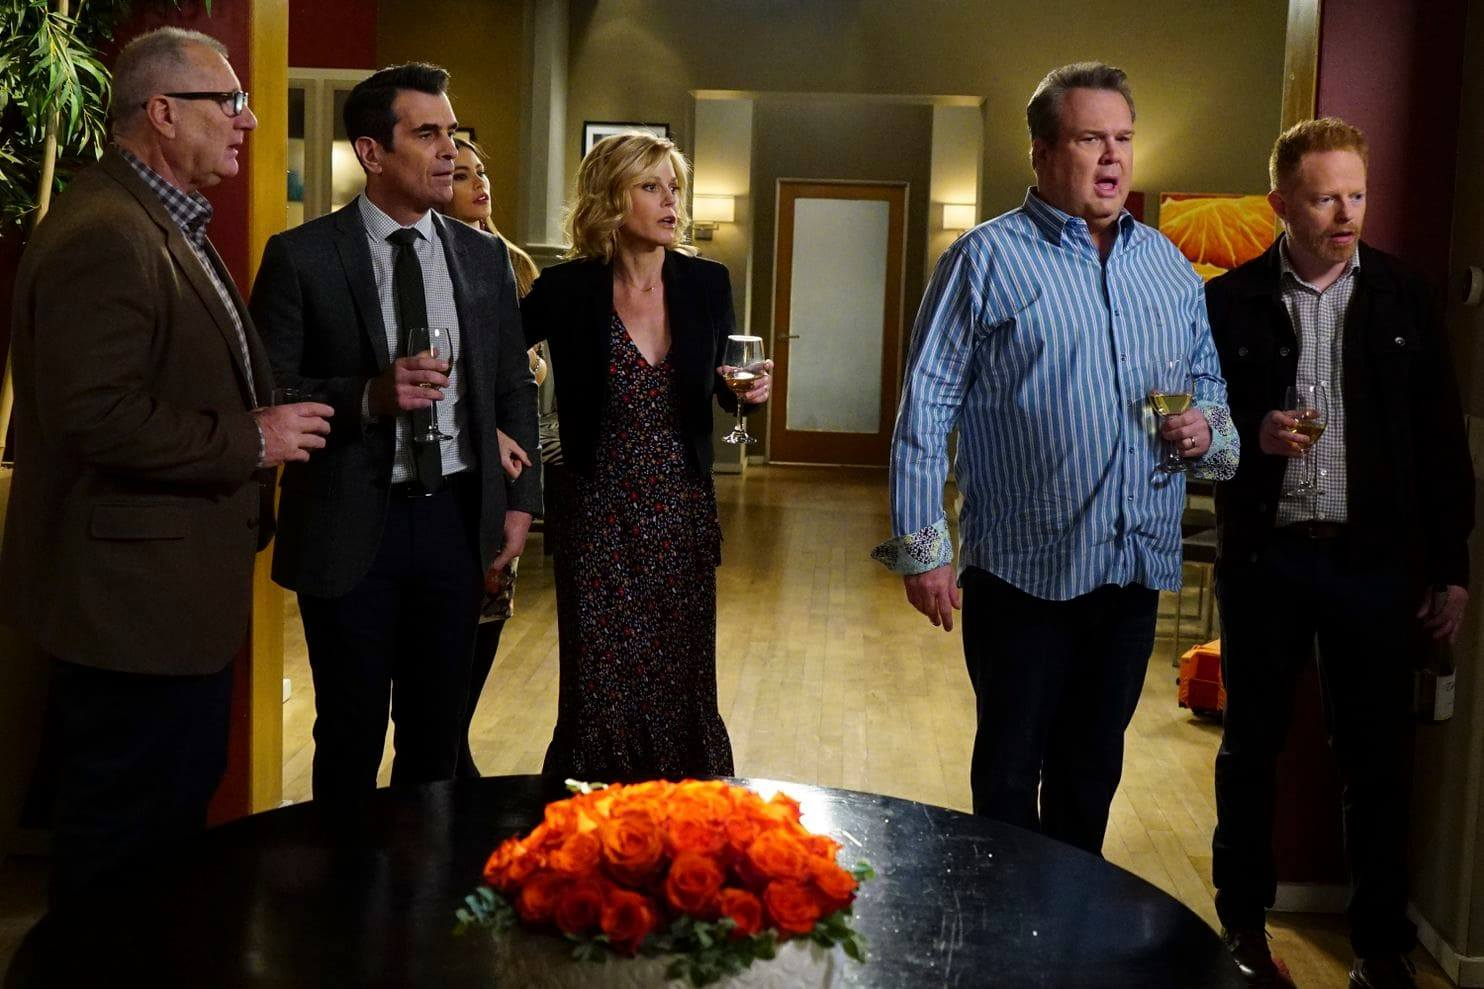 BSN6CTRJQII6TEDOTVK3MRI6WQ 10 Things You Never Knew About Modern Family